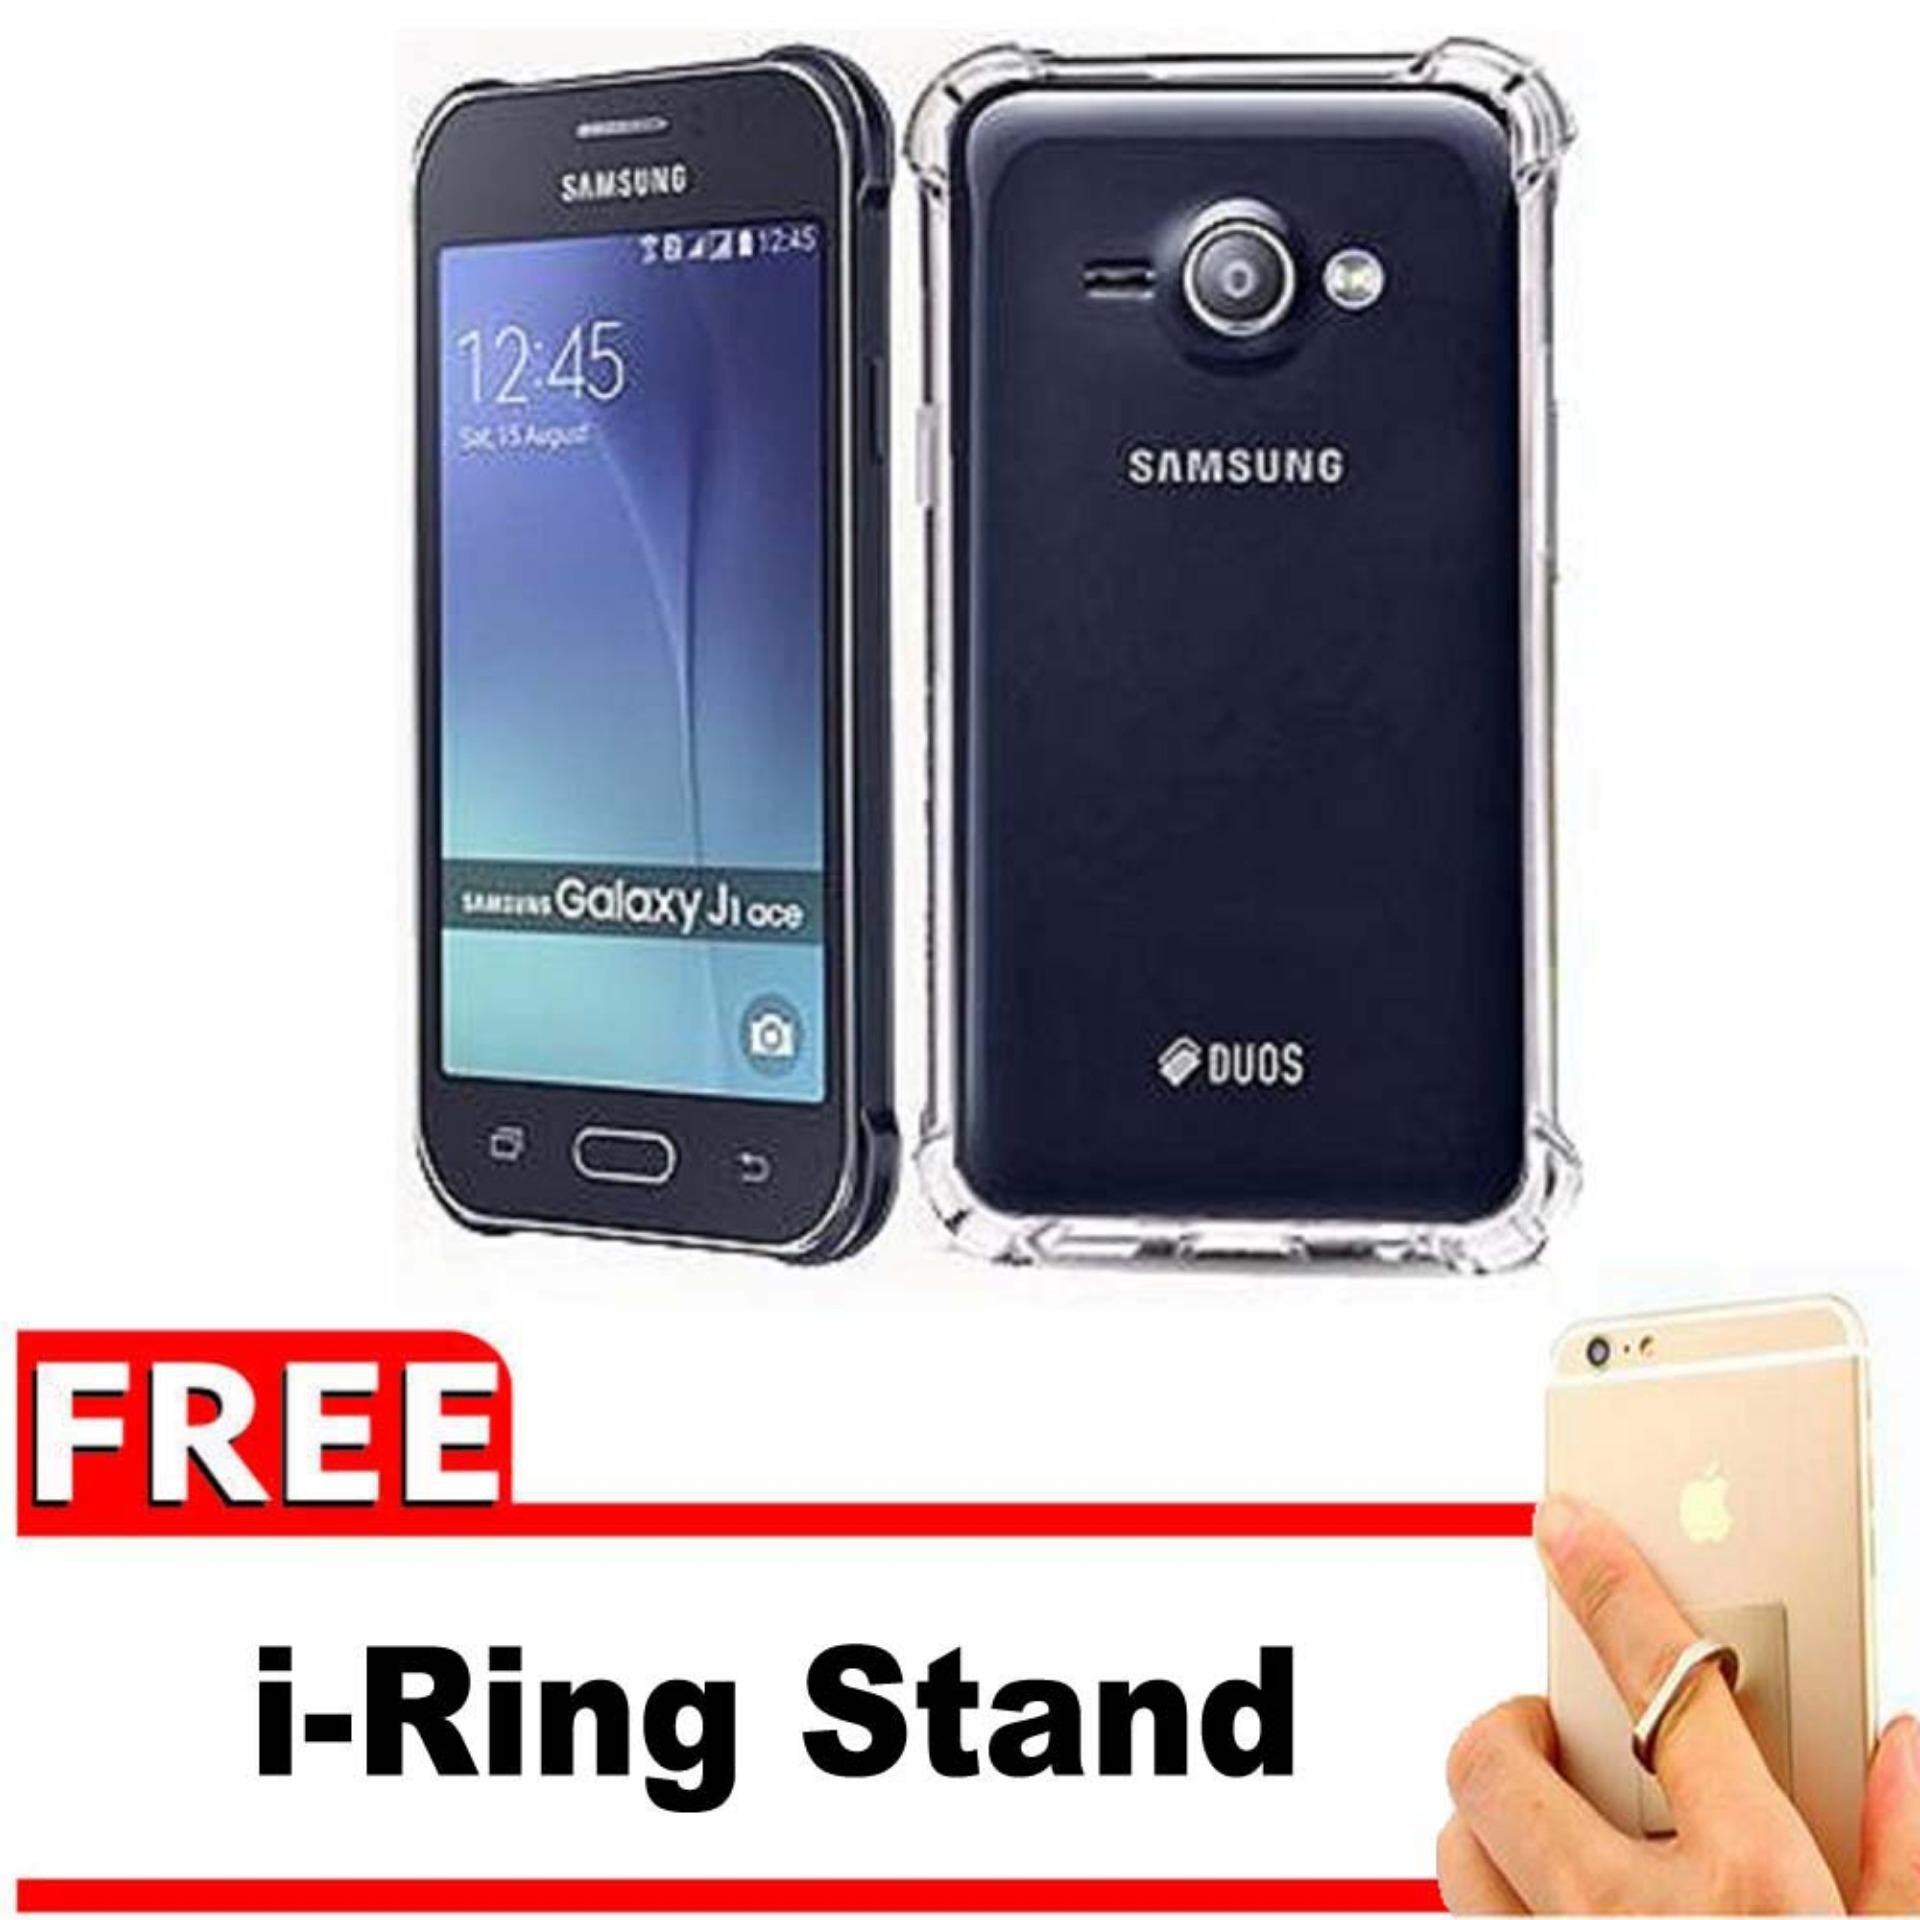 ShockCase for Samsung Galaxy J1 Ace / J110 / 4G LTE / Duos | Premium Softcase Jelly Anti Crack Shockproof - Gratis Free iRing Stand Phone Holder - Transparan